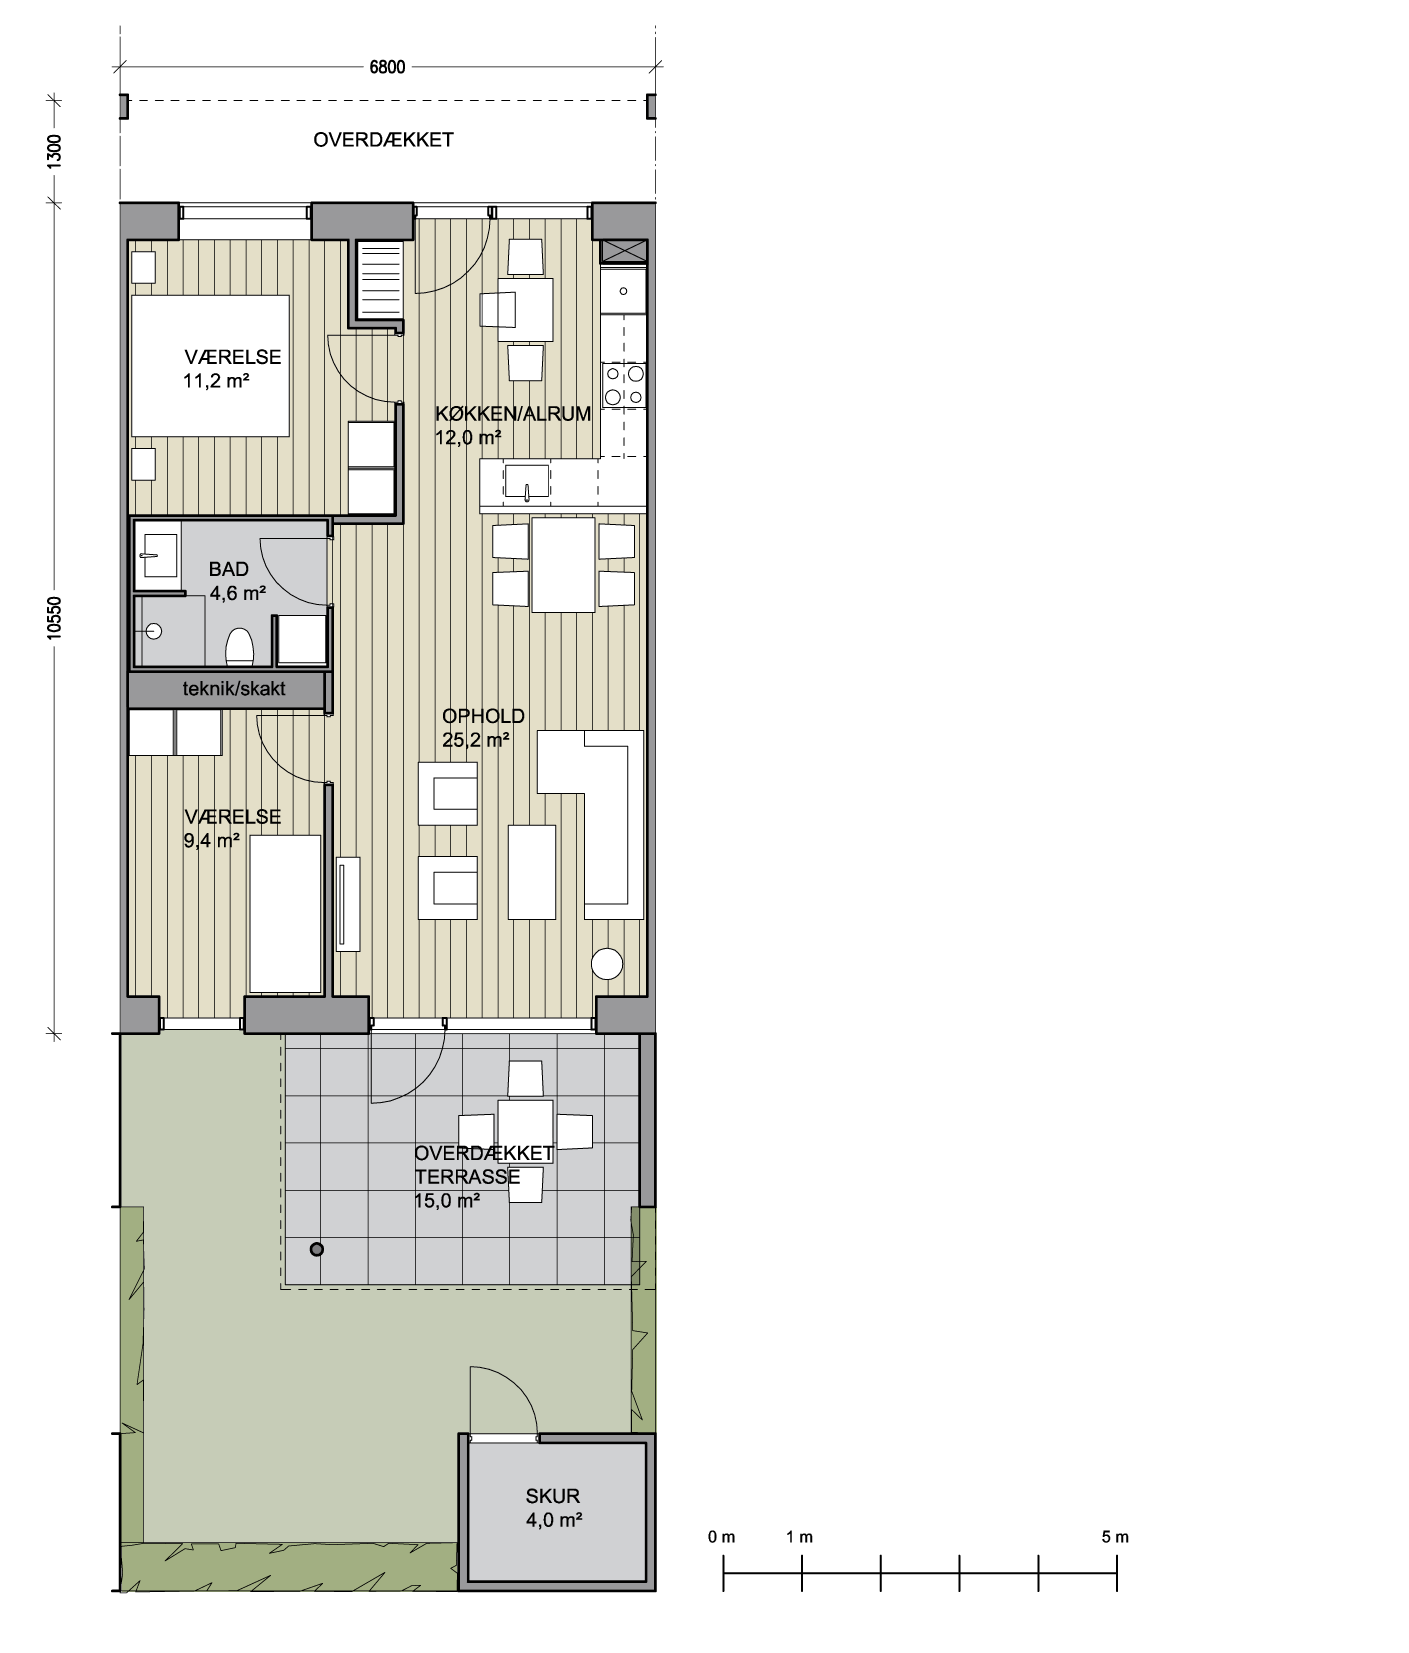 TYPE A - STUEPLAN 3-RUMS BOLIG BOLIG: 71,7 m² TERRASSE: 15 m² SKUR: 5 m² TYPE A - STUEPLAN (GAVL) 3-RUMS BOLIG